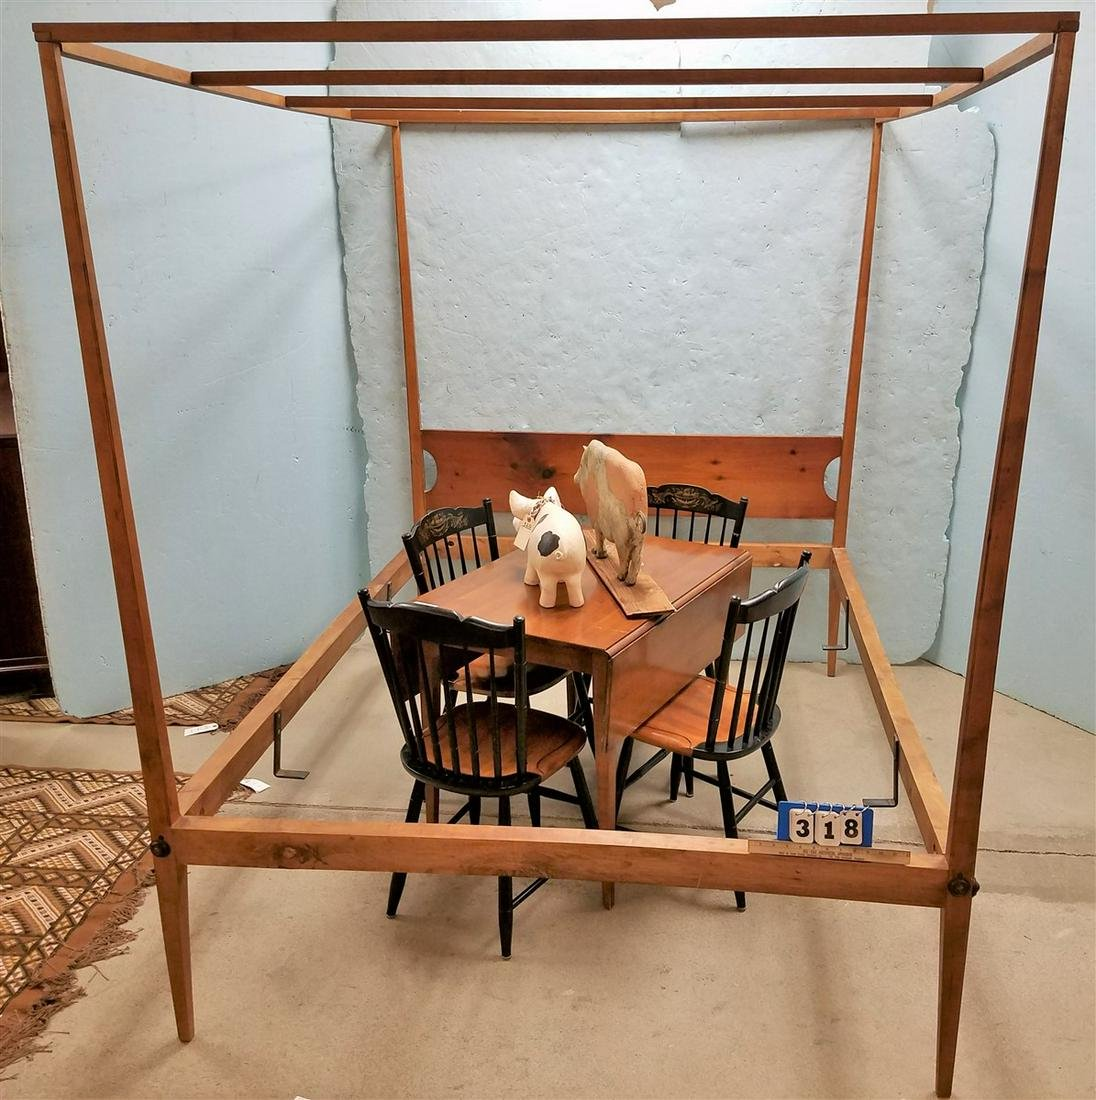 QUEEN SHAKER STYLE PINE CANOPY BED